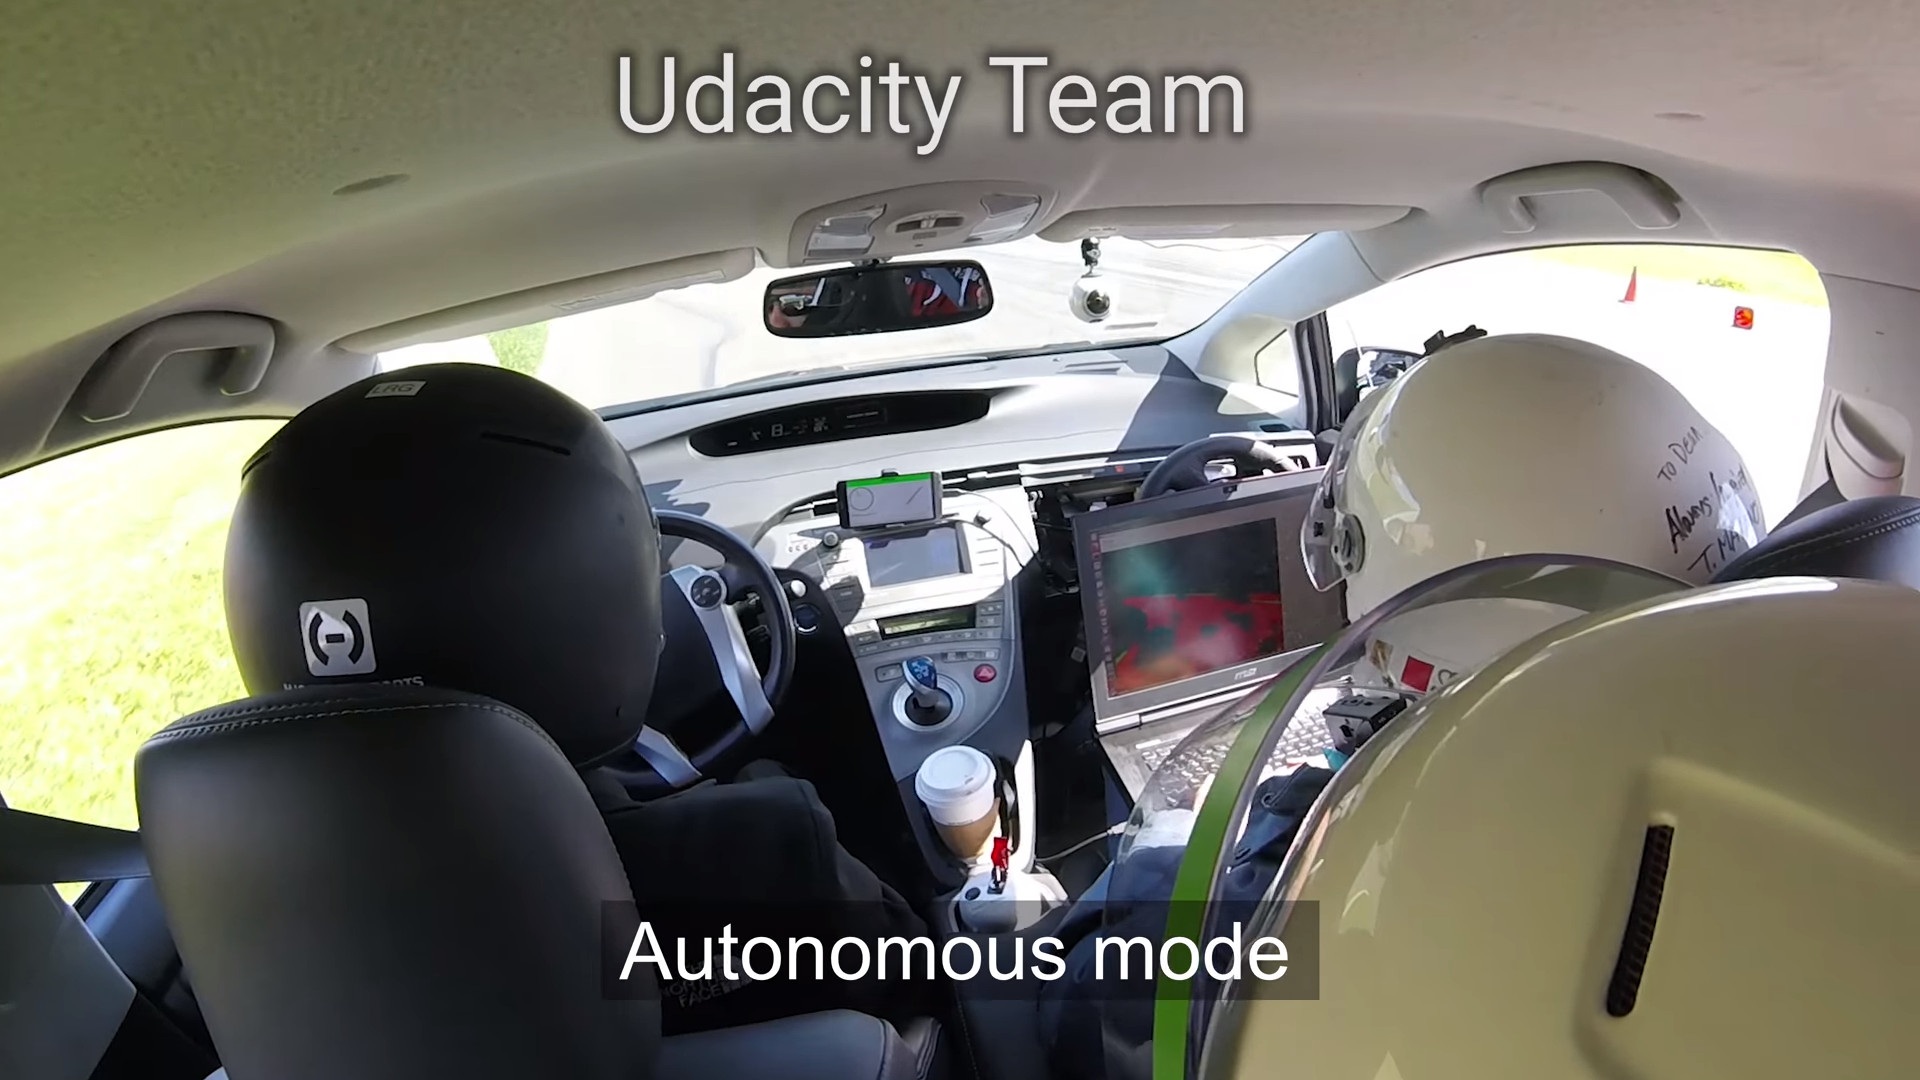 Udacity Team at Self-Racing Cars 2018